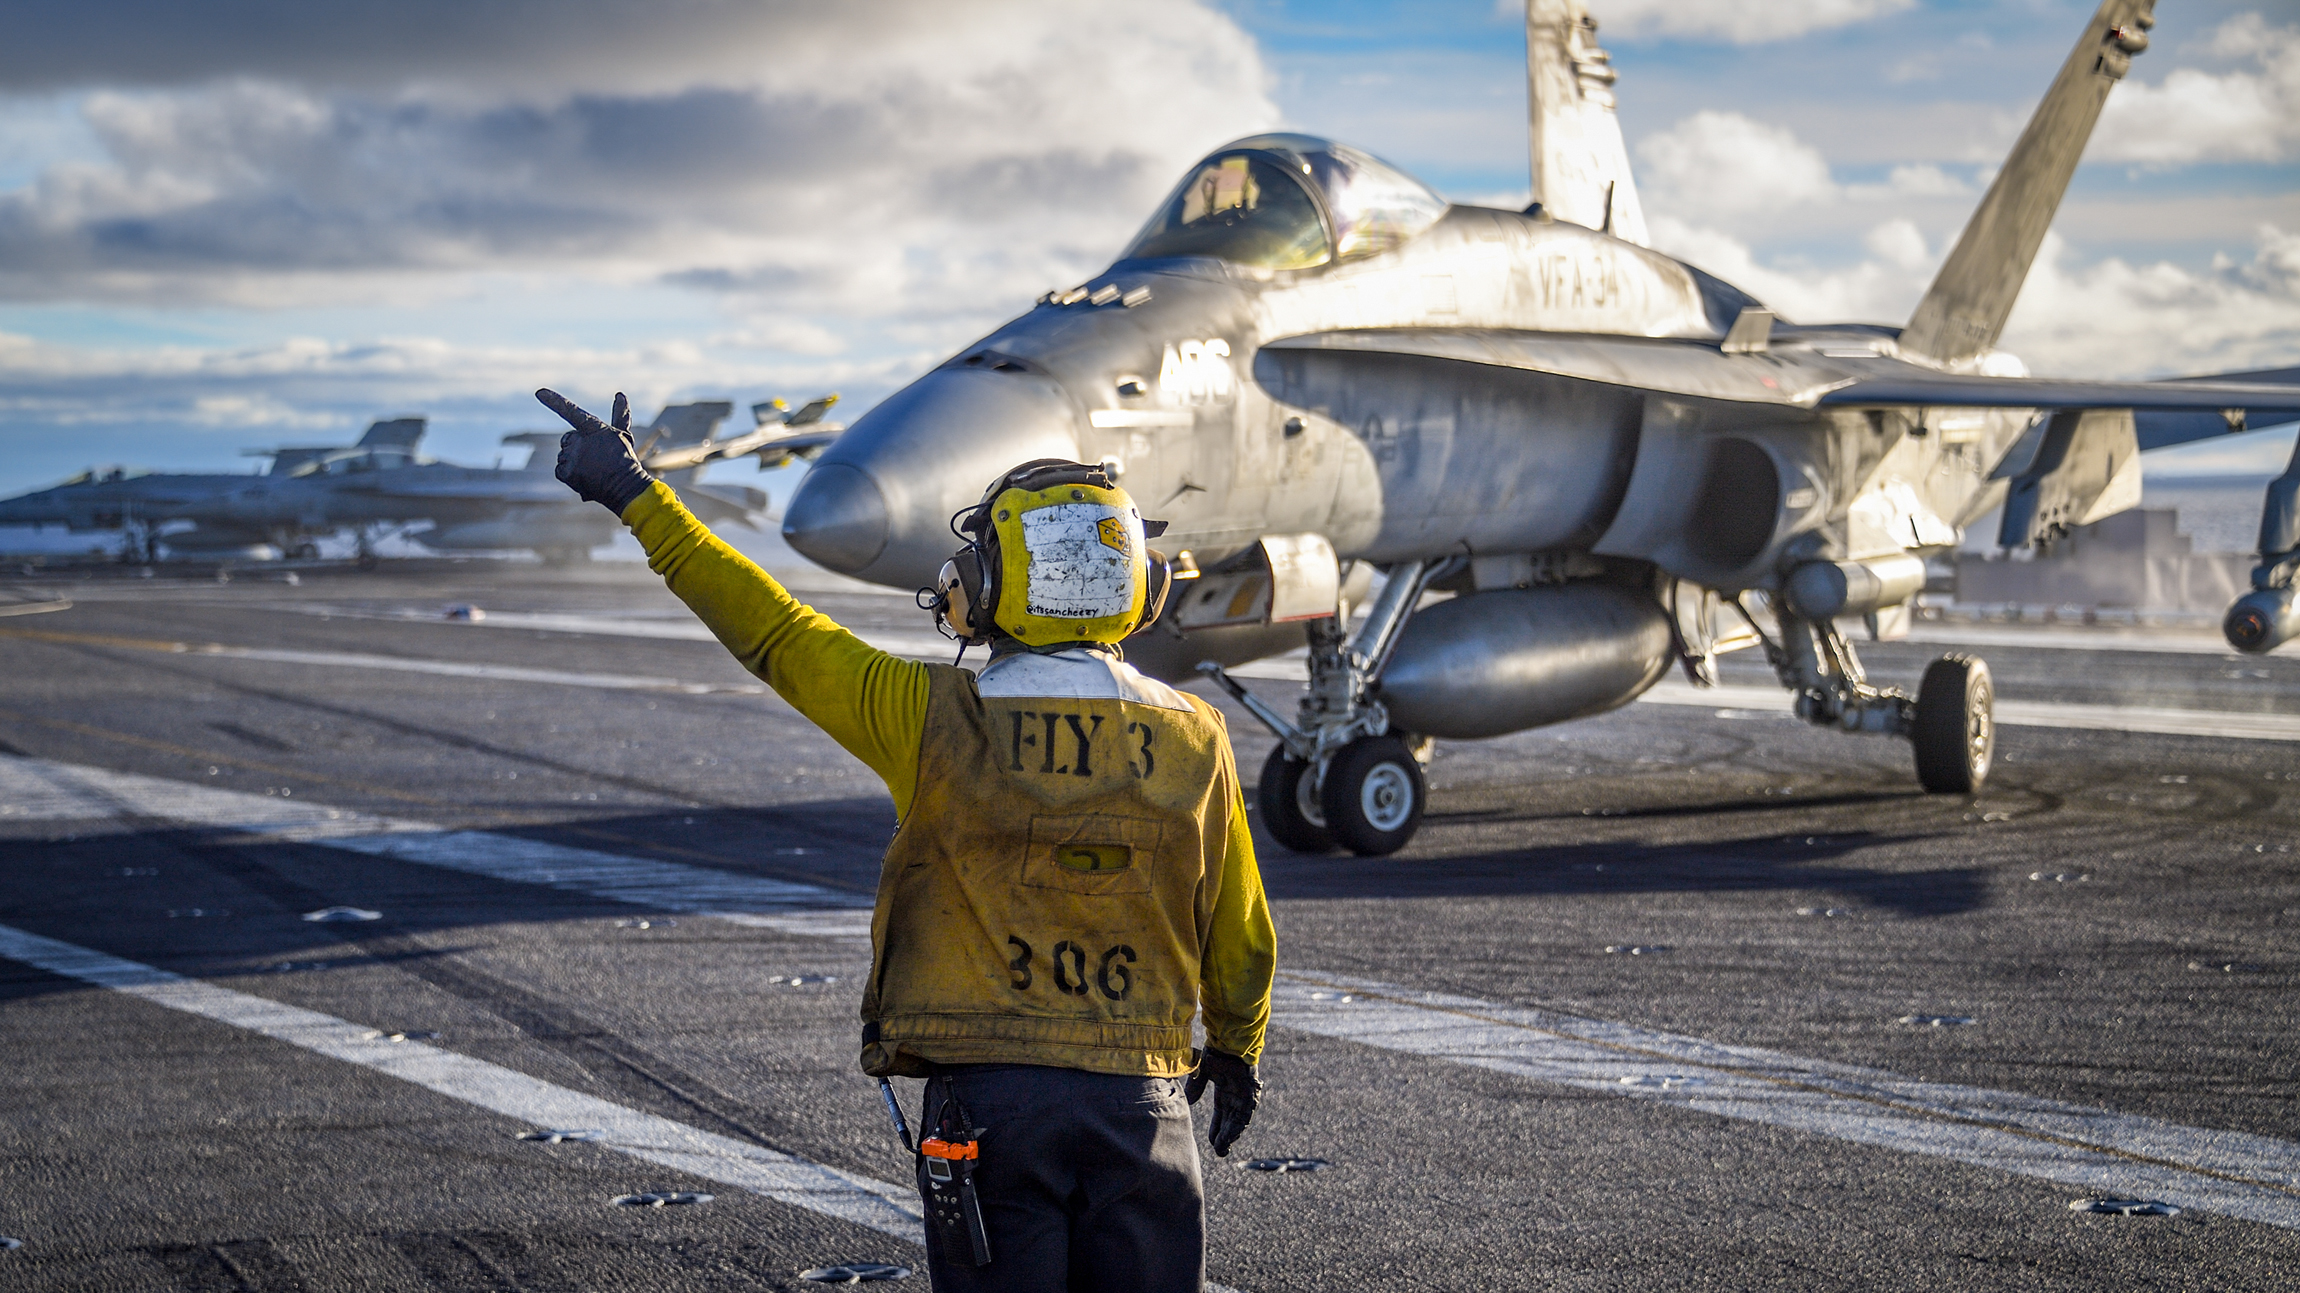 """Aviation Boatswain's Mate (Handling) 3rd Class Vincent Sanchez directs the pilot of an F/A-18C Hornet from the """"Blue Blasters"""" of Strike Fighter Squadron (VFA) 34 on the Nimitz-class aircraft carrier USS Carl Vinson flight deck. Carl Vinson is participating in a sustainment training exercise in preparation for an upcoming deployment. (MC2 Sean M. Castellano/Navy)"""